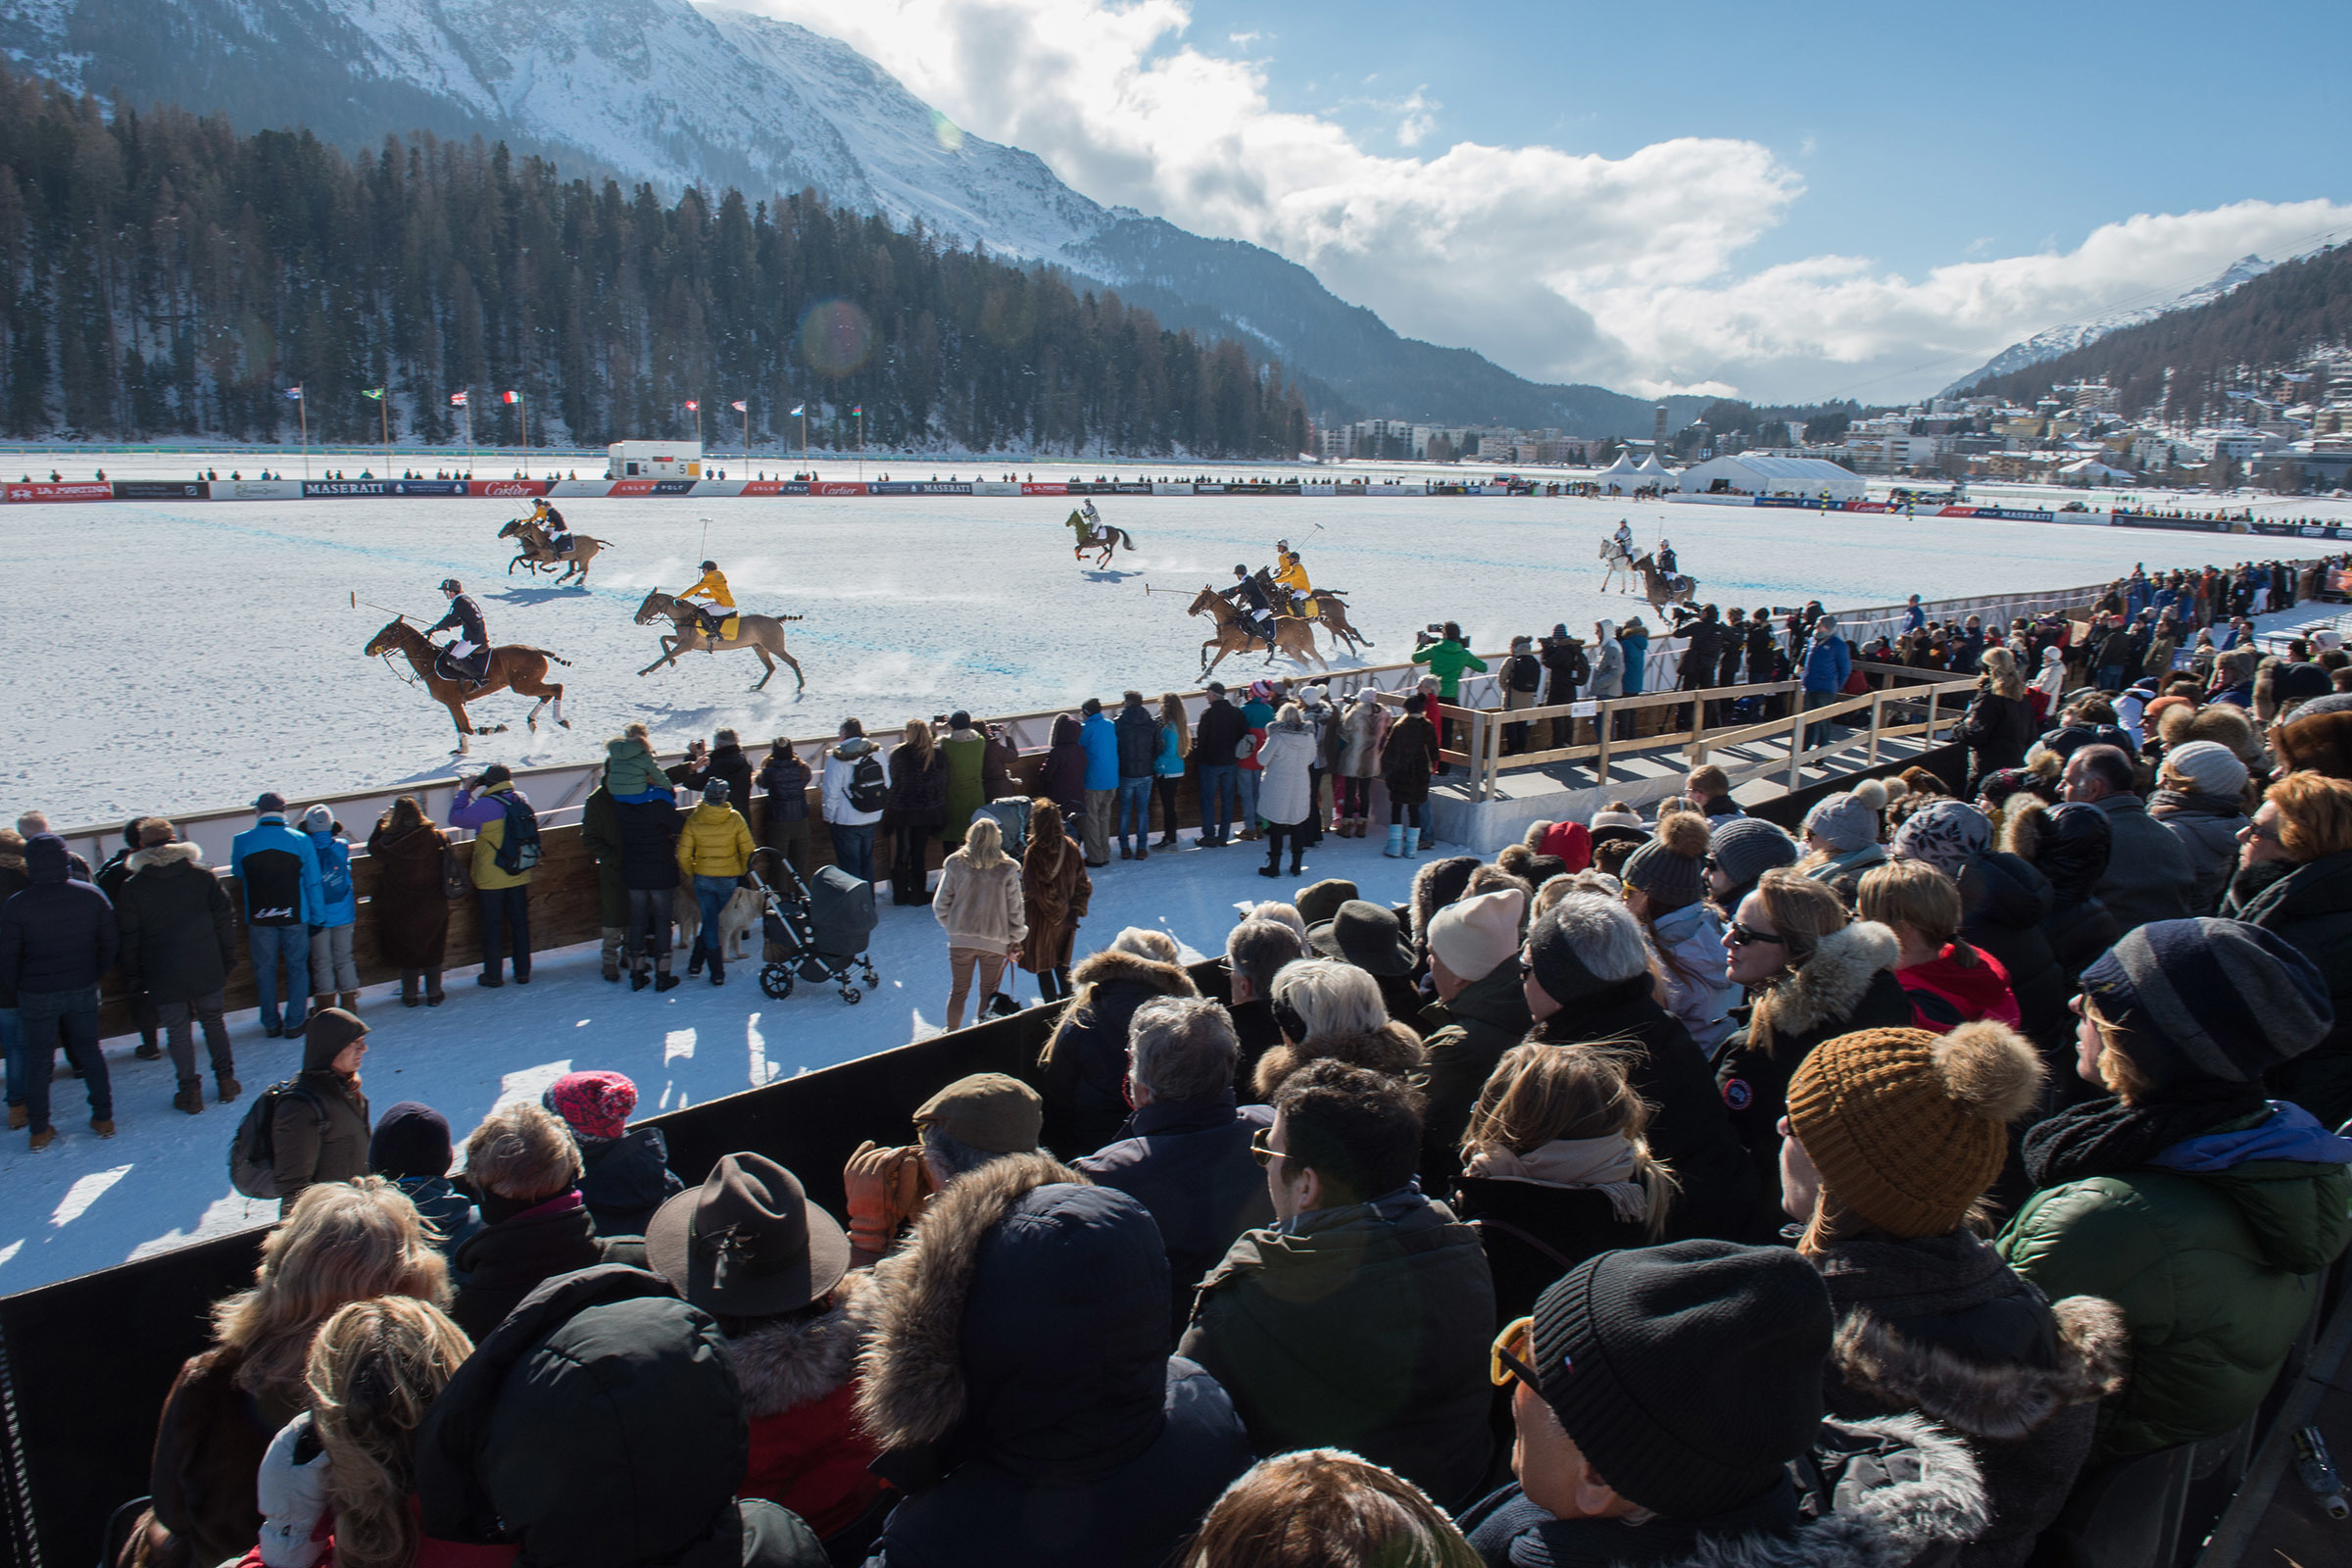 36th Snow Polo World Cup St. Moritz